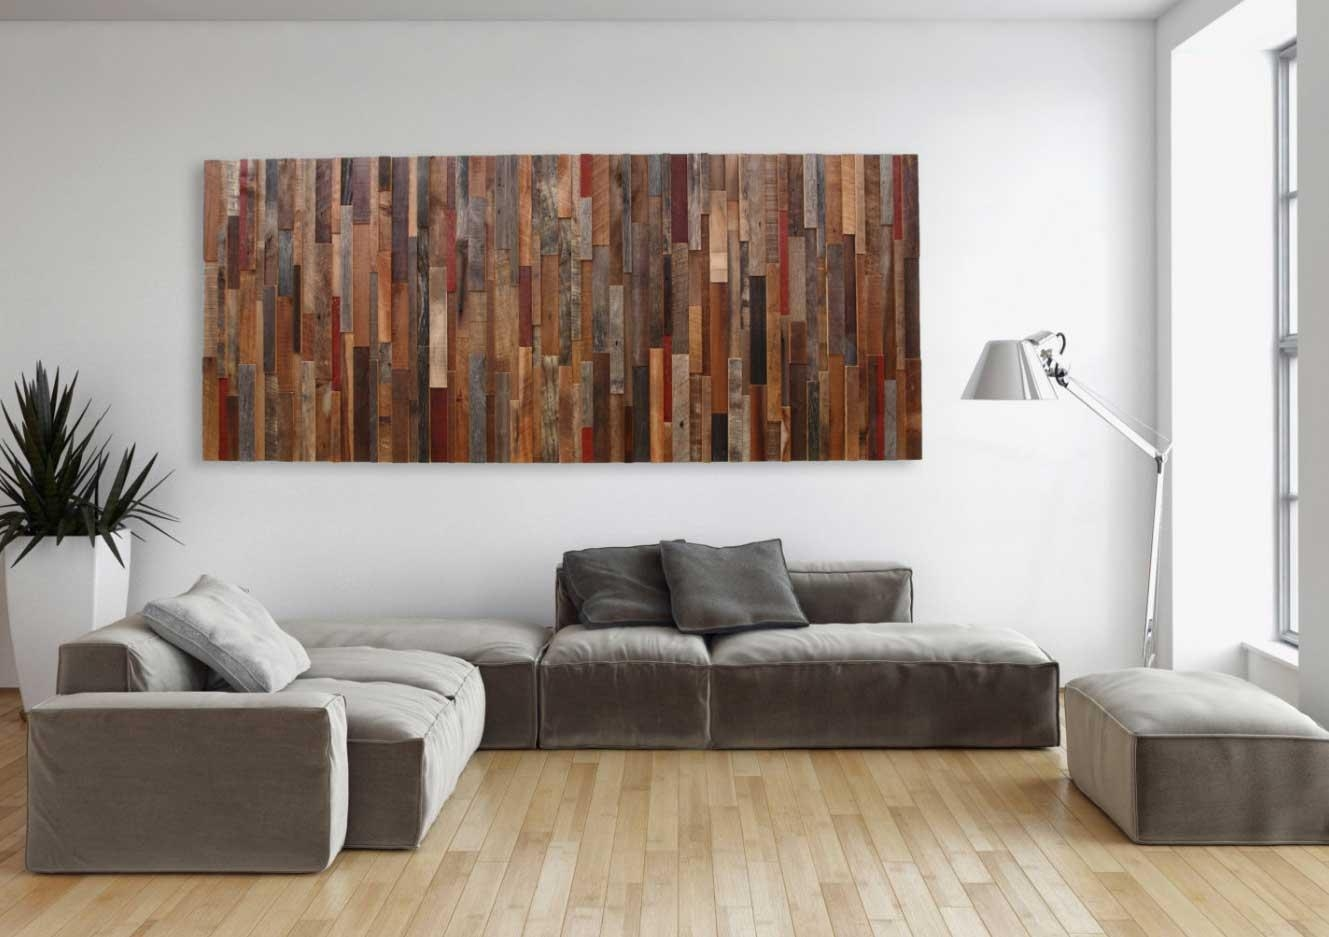 Oversized Wall Art Contemporary Sculpture Ideas | Home Interior Pertaining To Contemporary Oversized Wall Art (View 5 of 20)